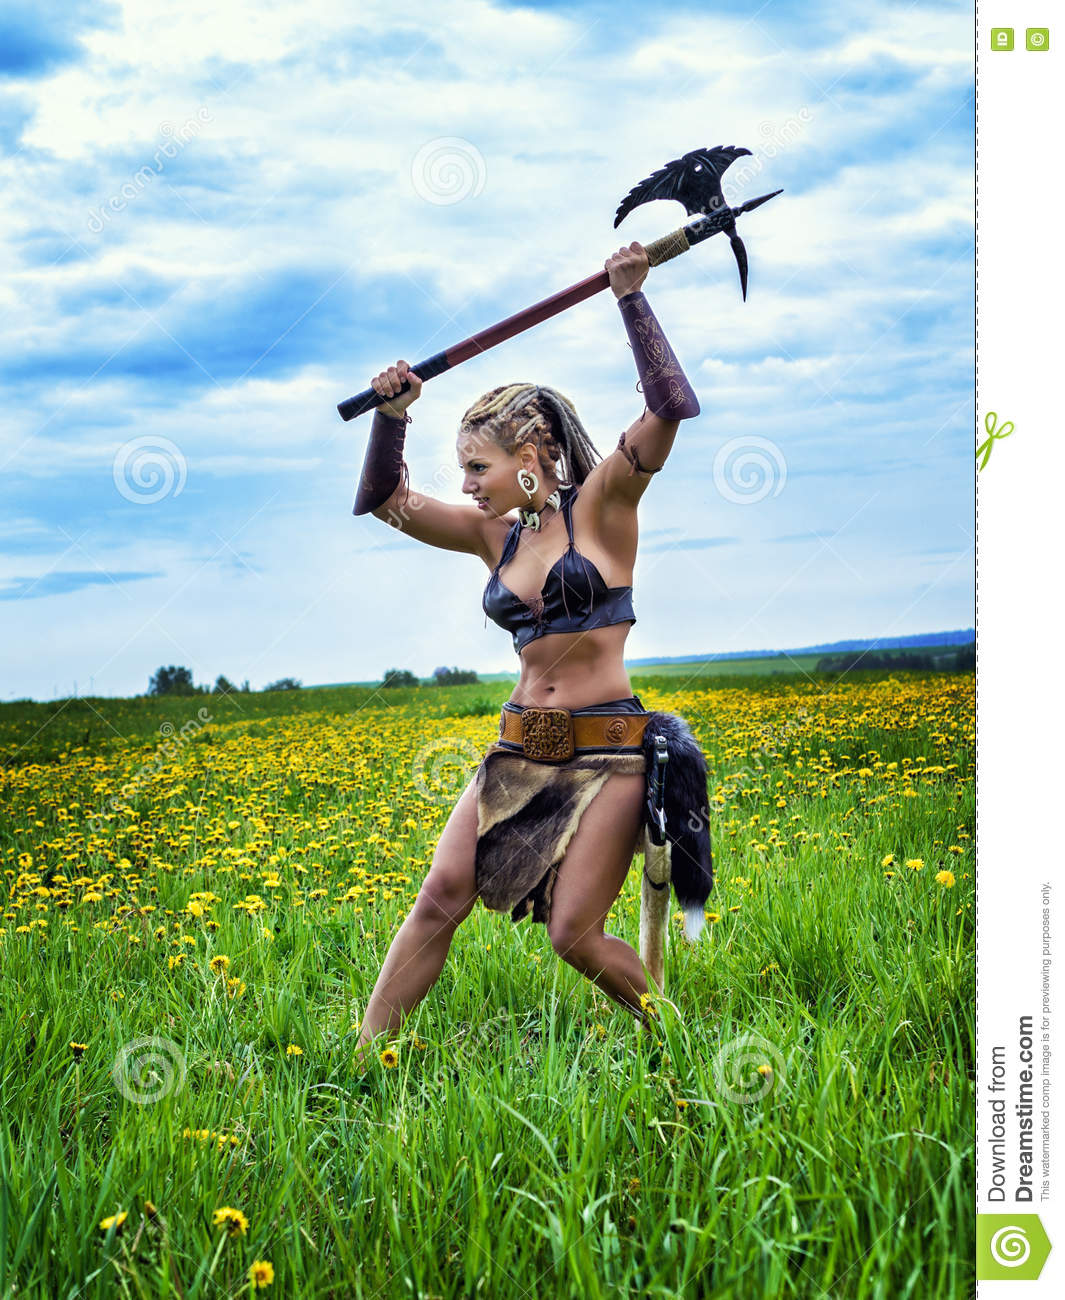 Sword of the barbarians whipping 7